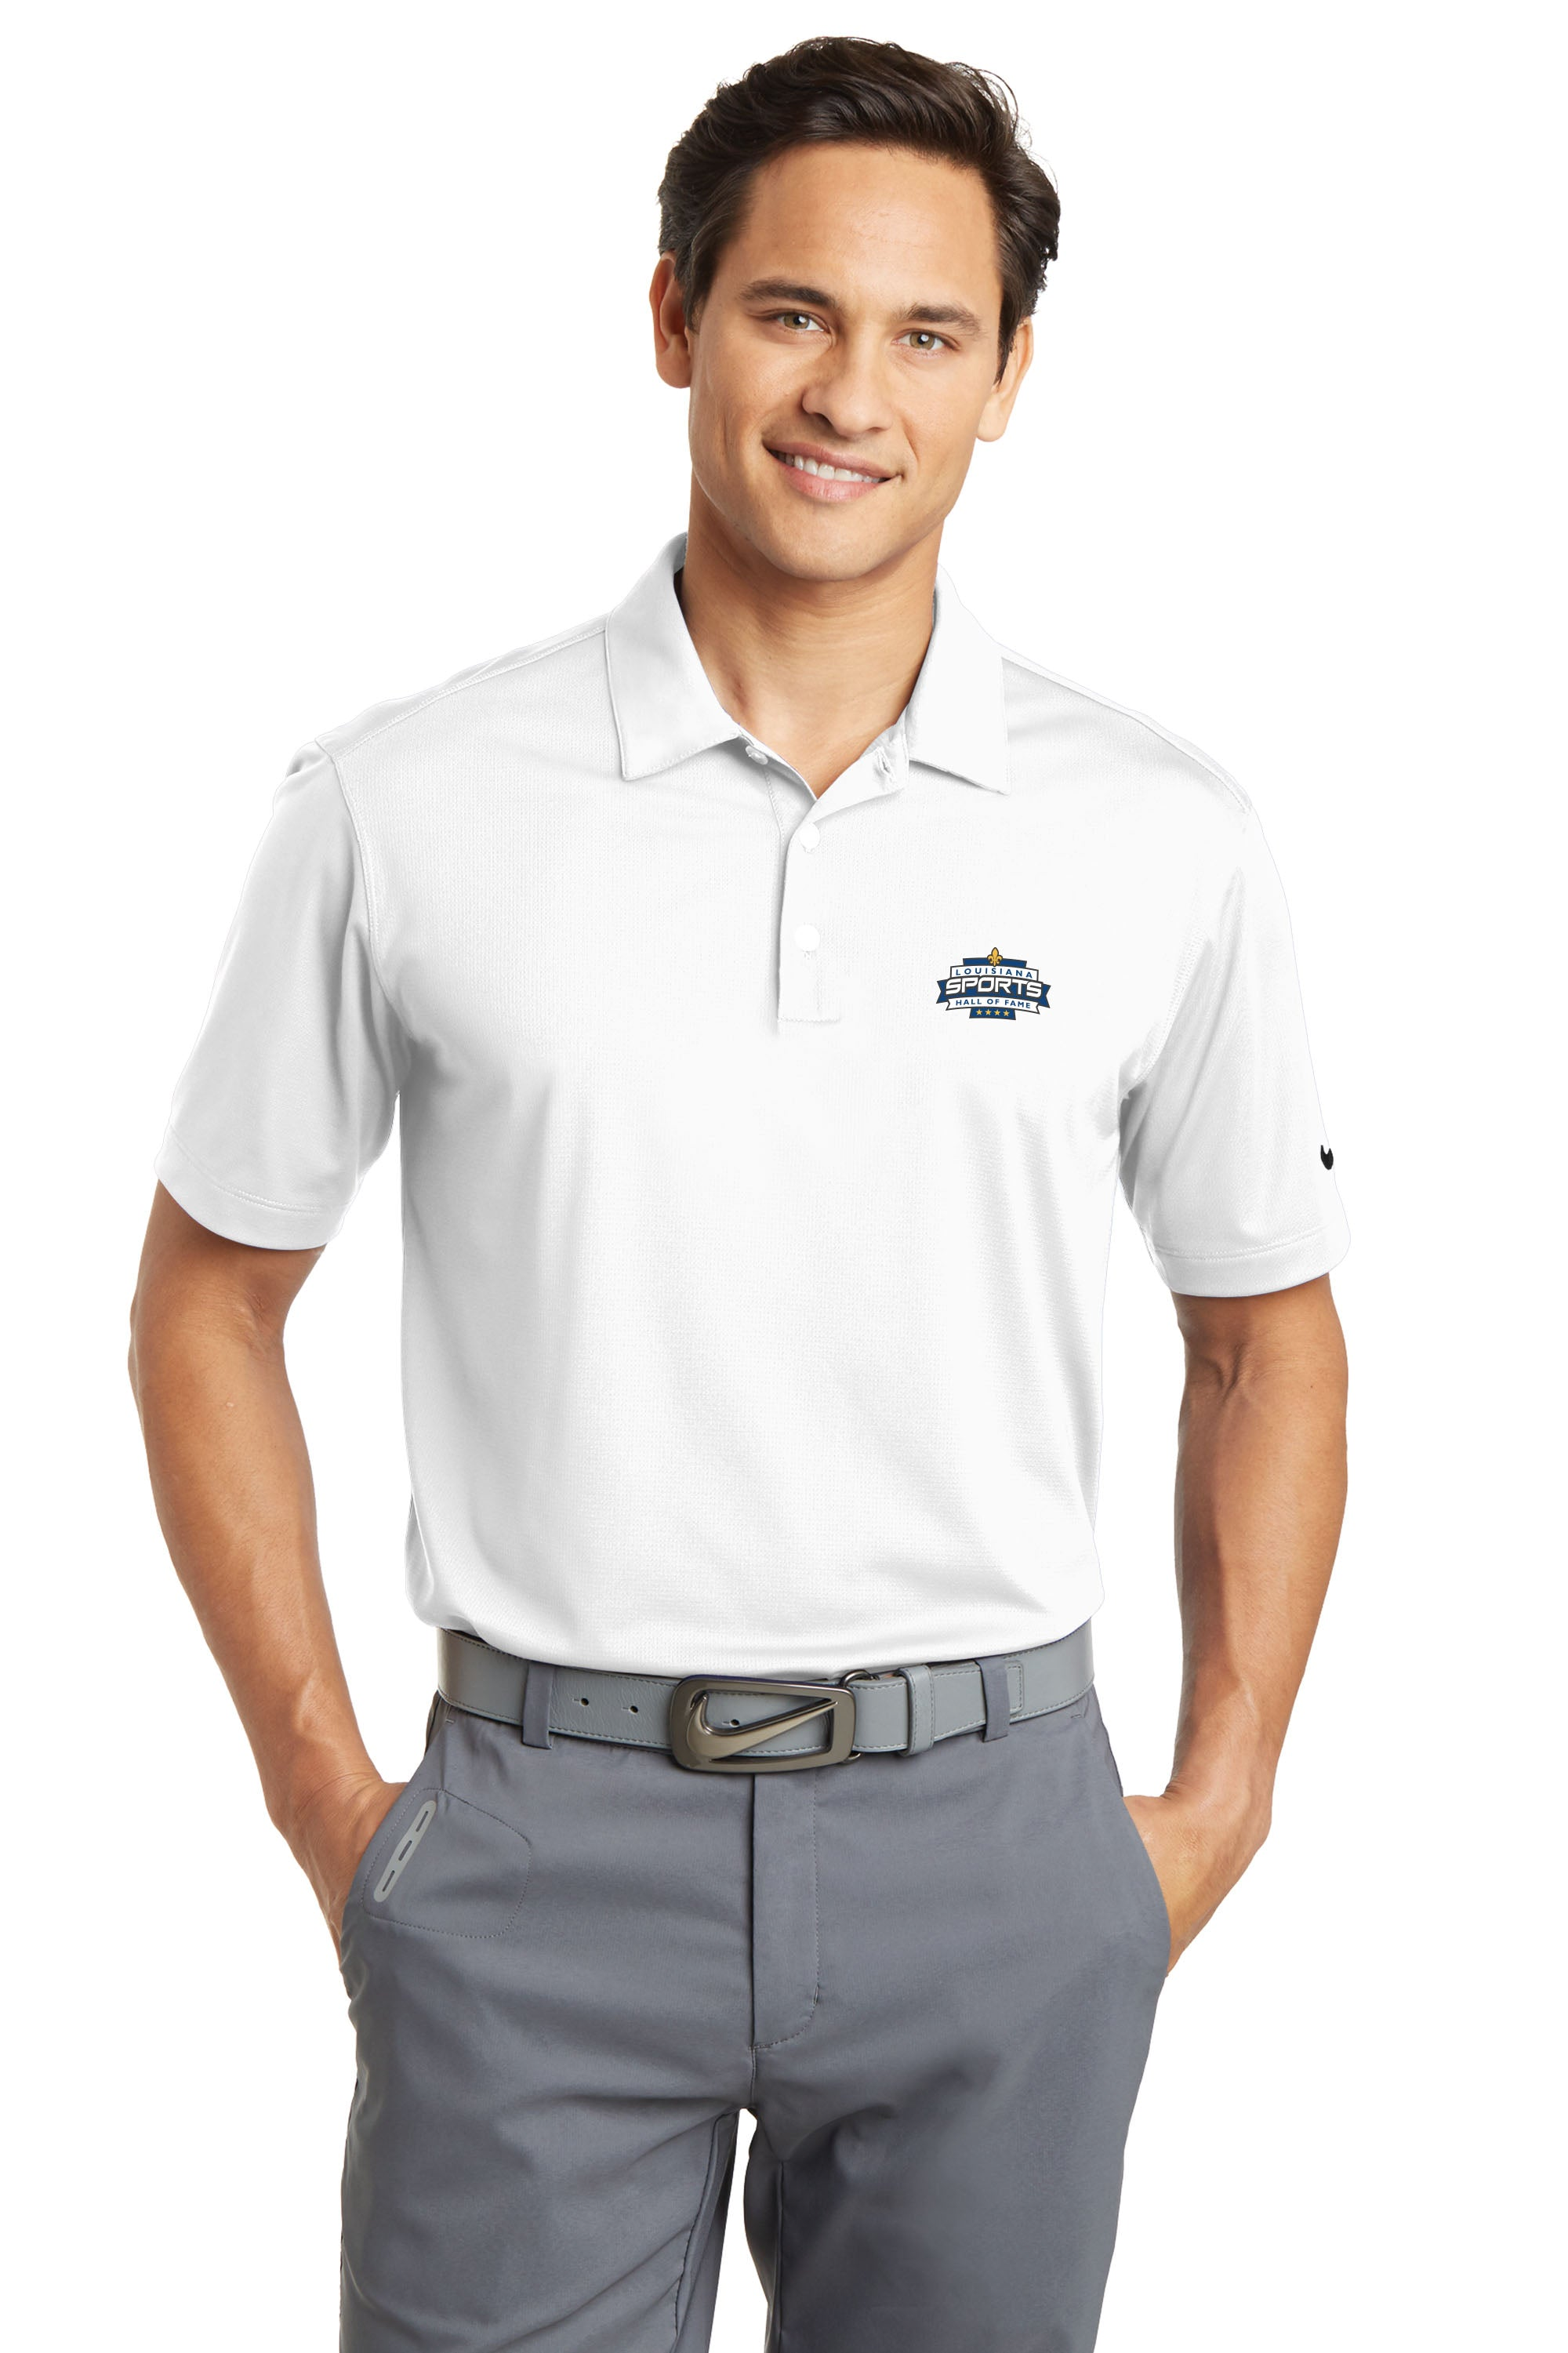 c26f947b LSHOF - Nike Golf Men's BIG and TALL Dri-Fit Micro Pique Polo (WHITE) – Gus  Willy Apparel